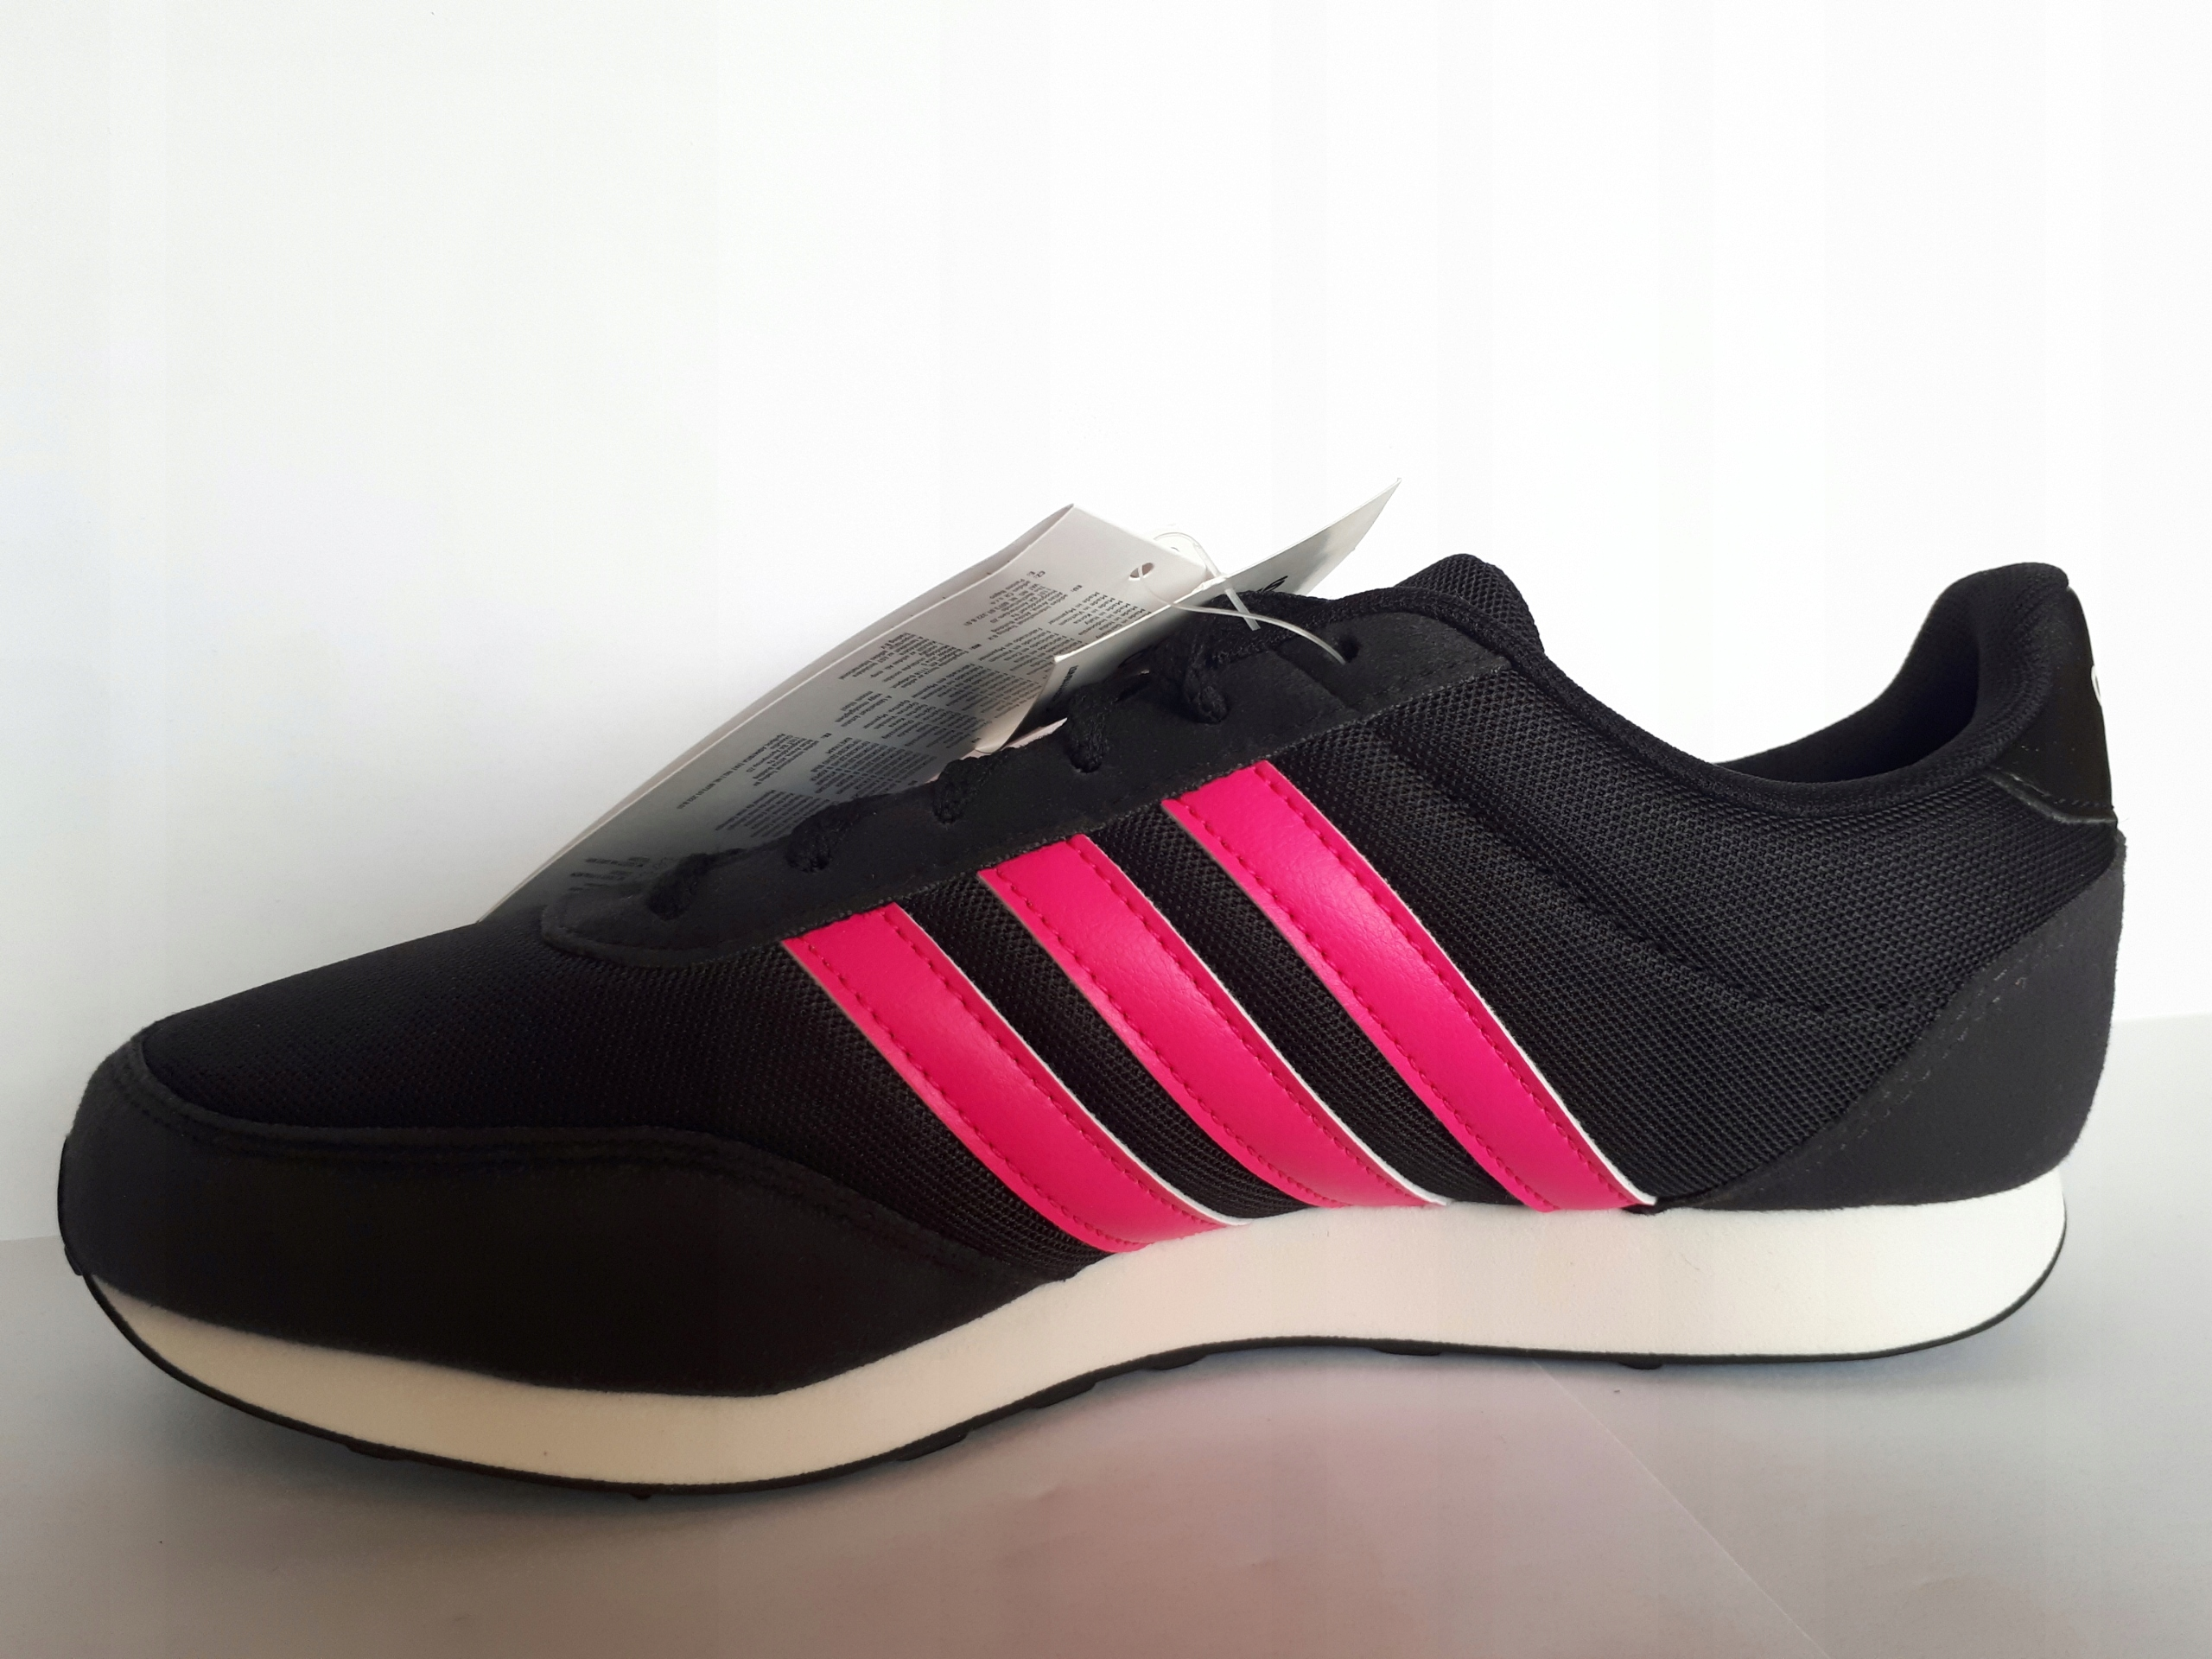 outlet store 7d17b bf499 BUTY adidas V RACER 2.0 W BC0112 r.38 23 (7562383834)